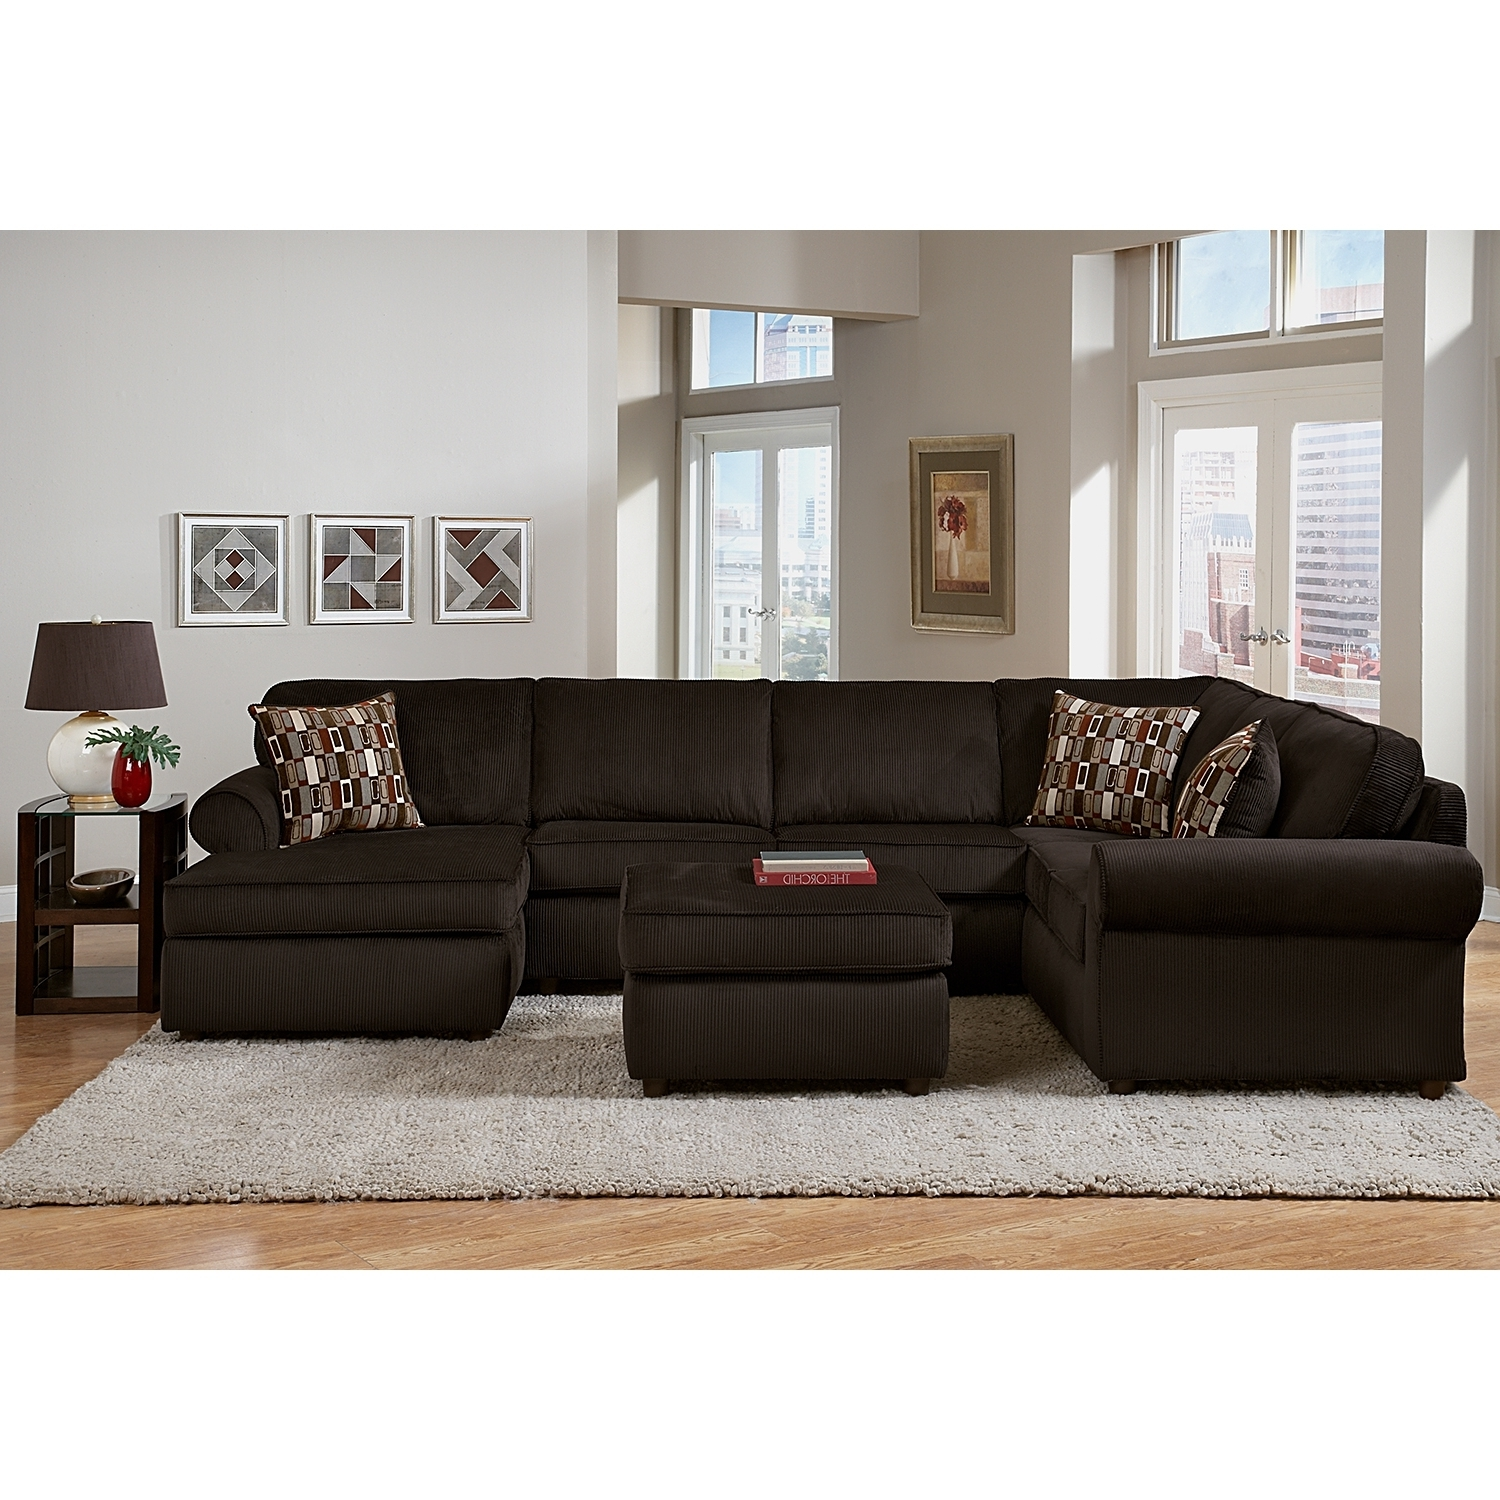 Picture 5 Of 34 – Sectional Sofas Sale Luxury Stunning Value City With Regard To Current Scarborough Sectional Sofas (View 12 of 20)